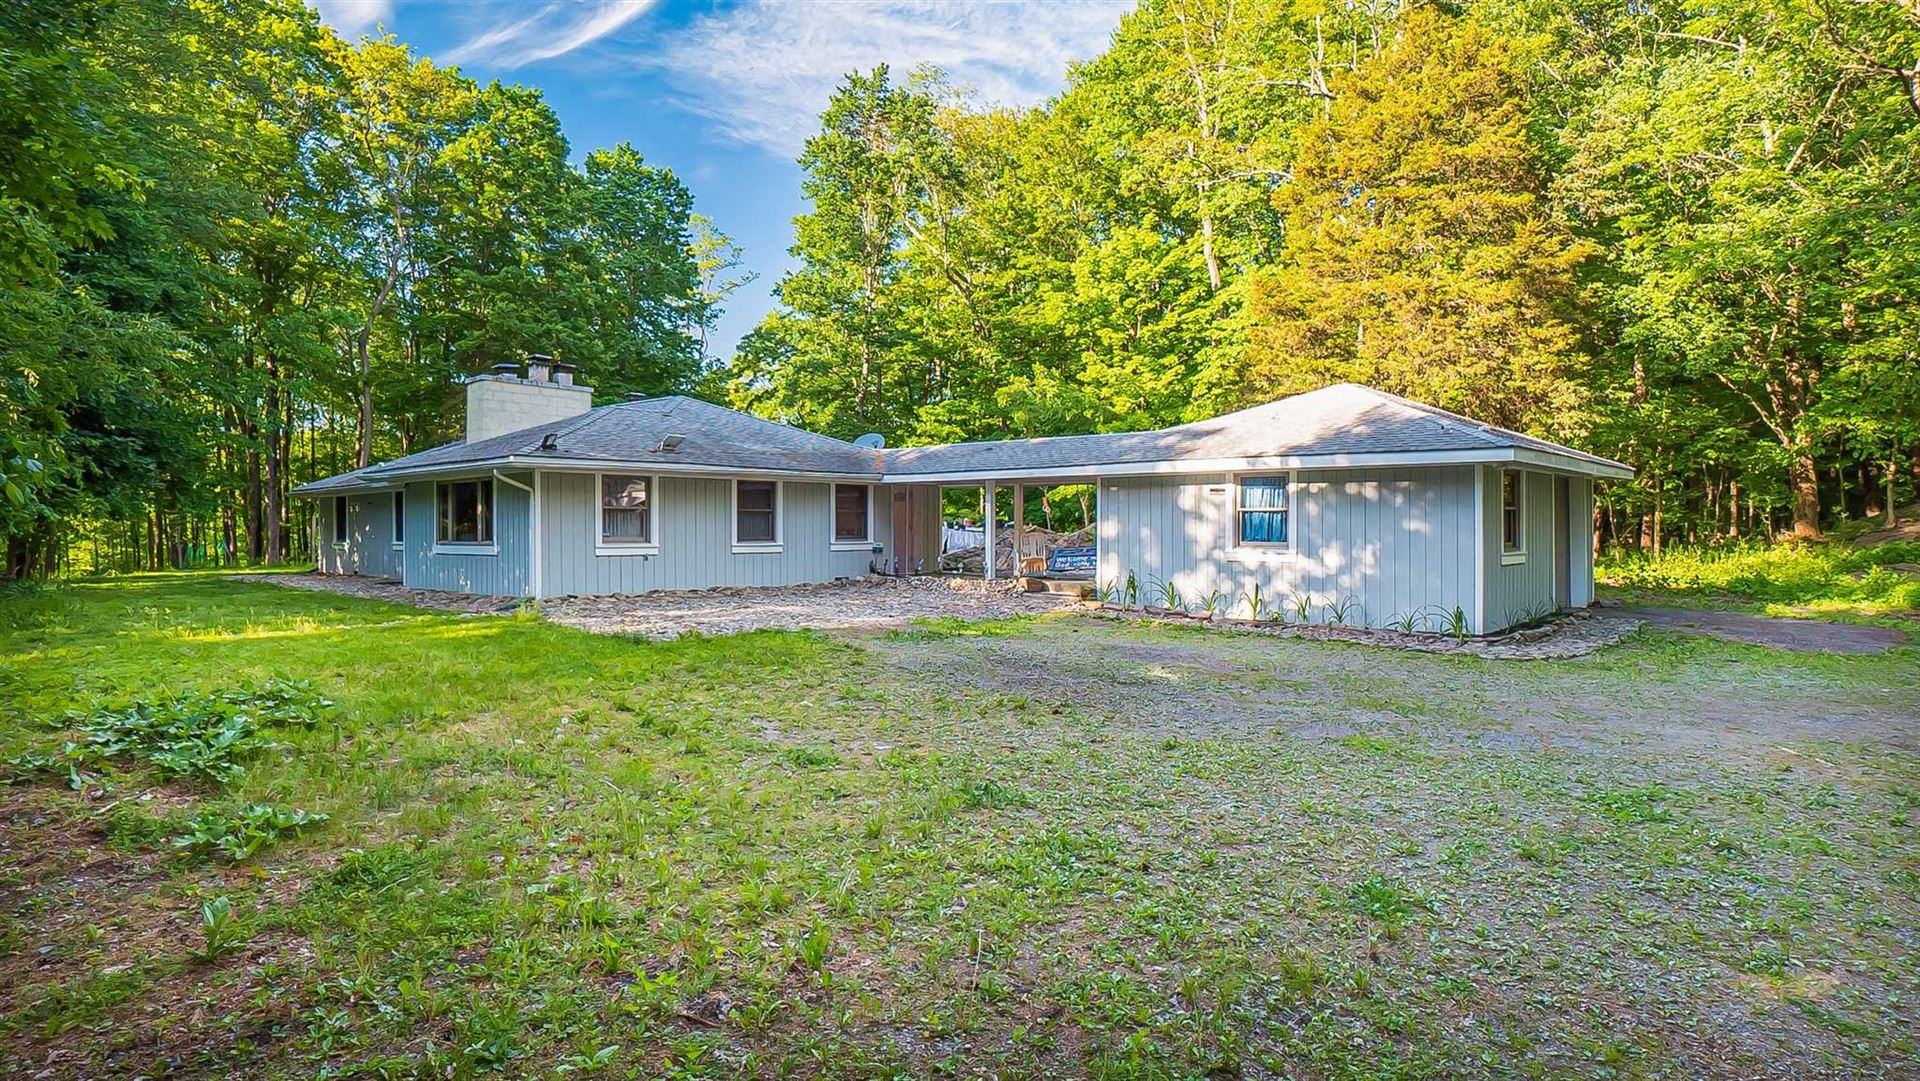 86 PARKSVILLE RD, Pleasant Valley, NY 12569 - #: 400983